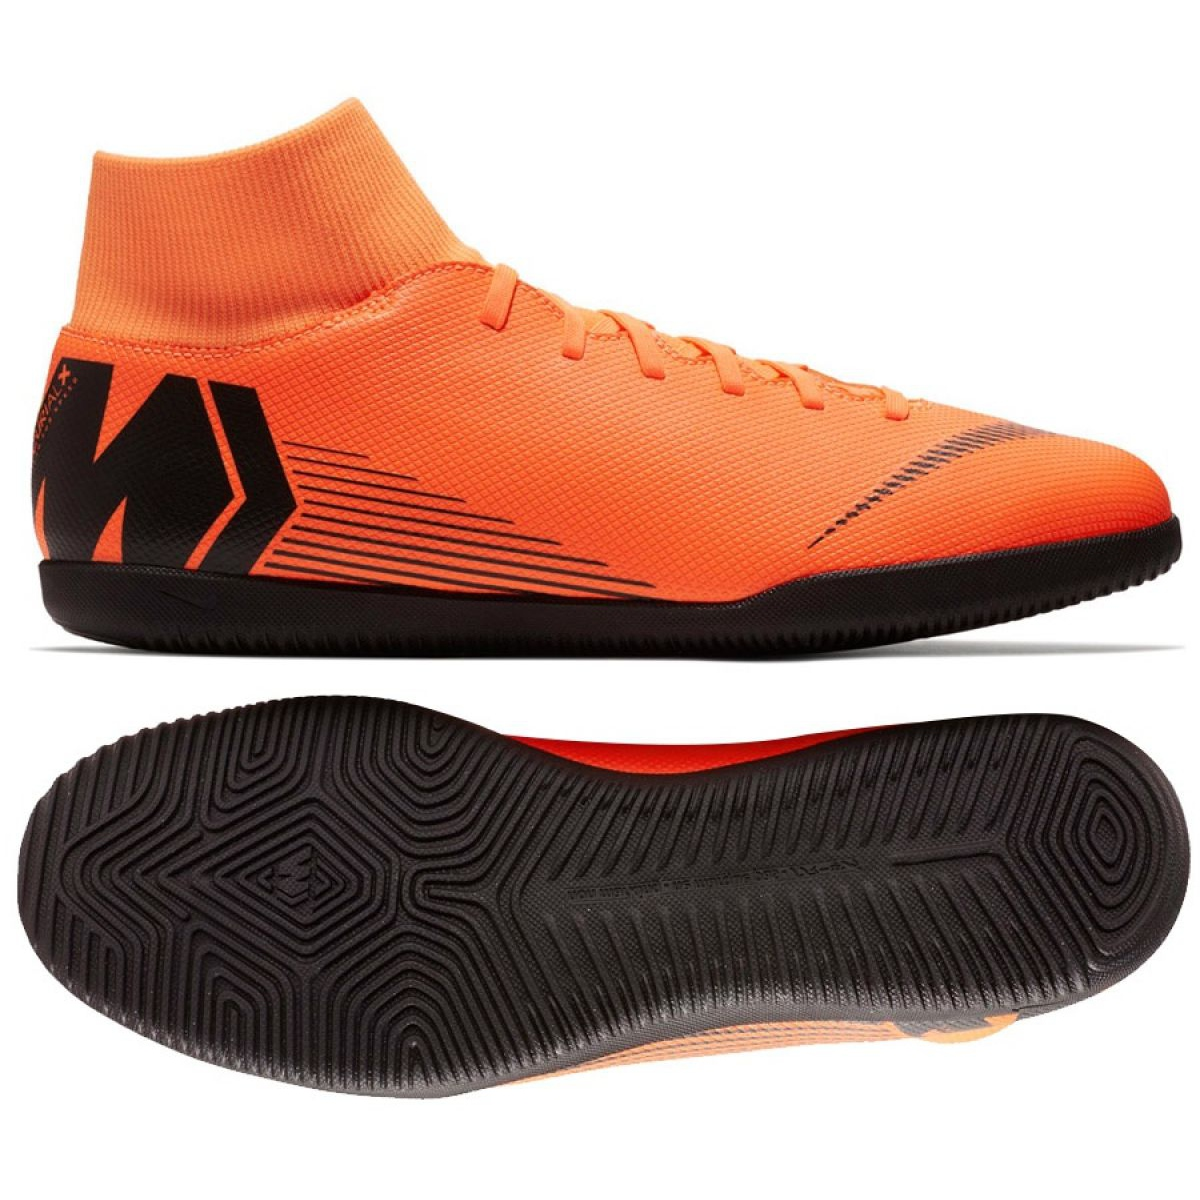 discount authentic catch Football shoes Nike Mercurial Superfly 6 Club Ic M AH7371-810 orange orange